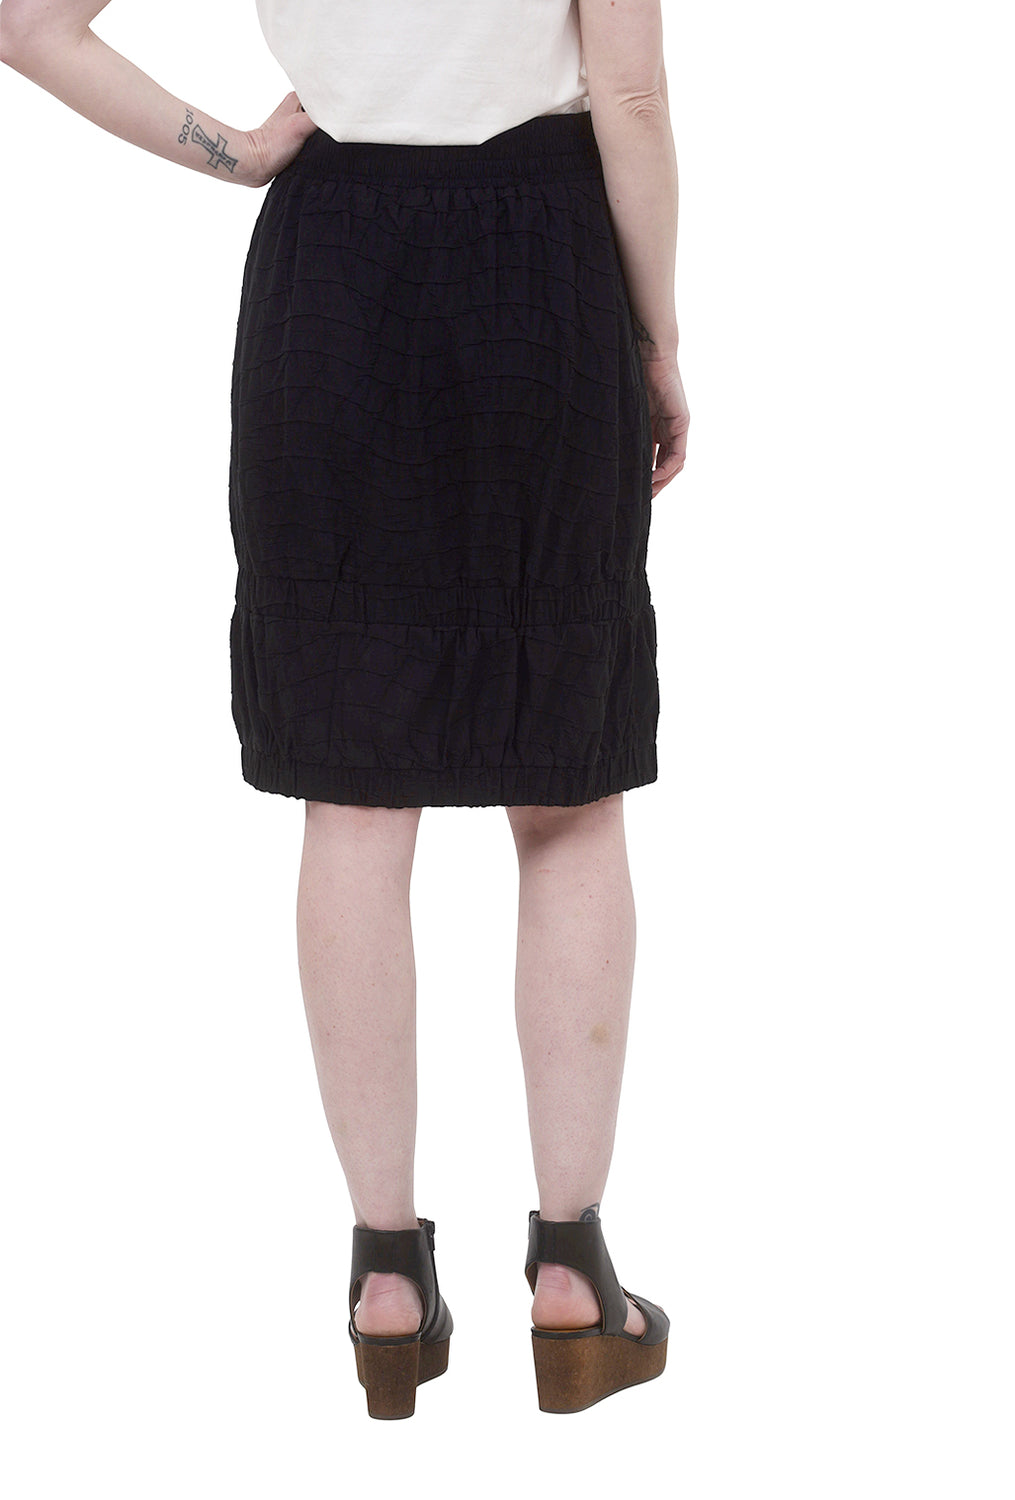 My Soul Textured Bubble Skirt, Black